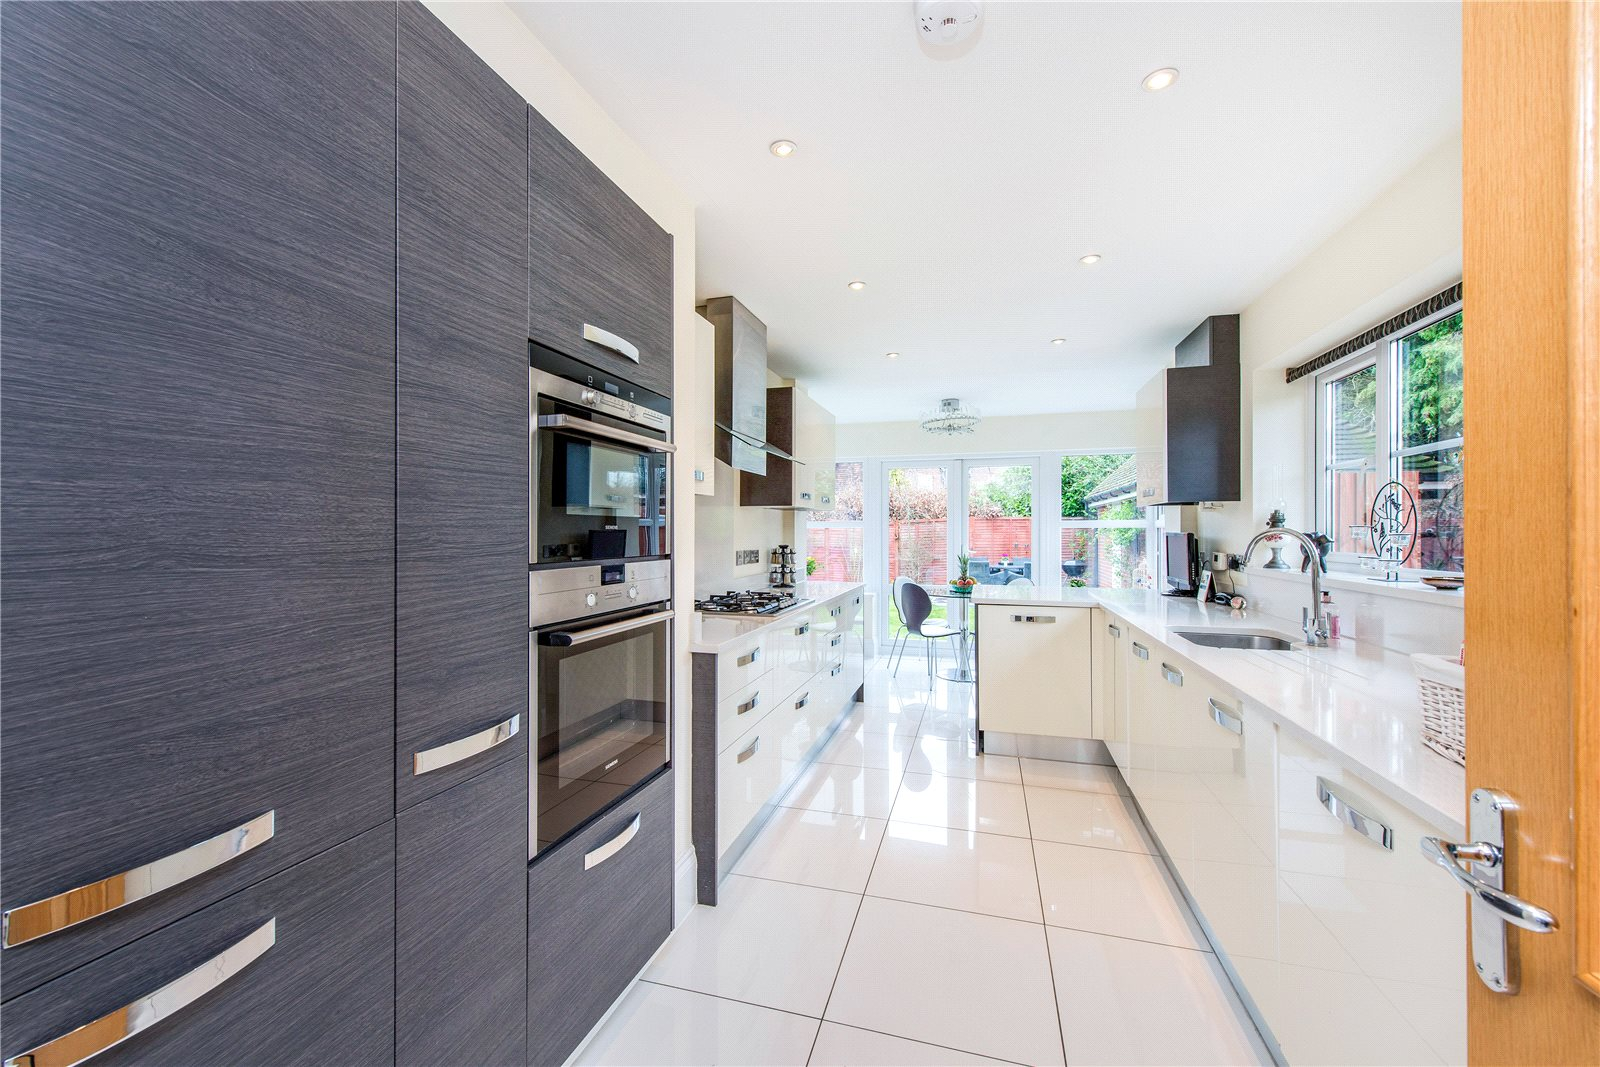 Additional photo for property listing at Ethorpe Crescent, Gerrards Cross, Buckinghamshire, SL9 Gerrards Cross, Engeland